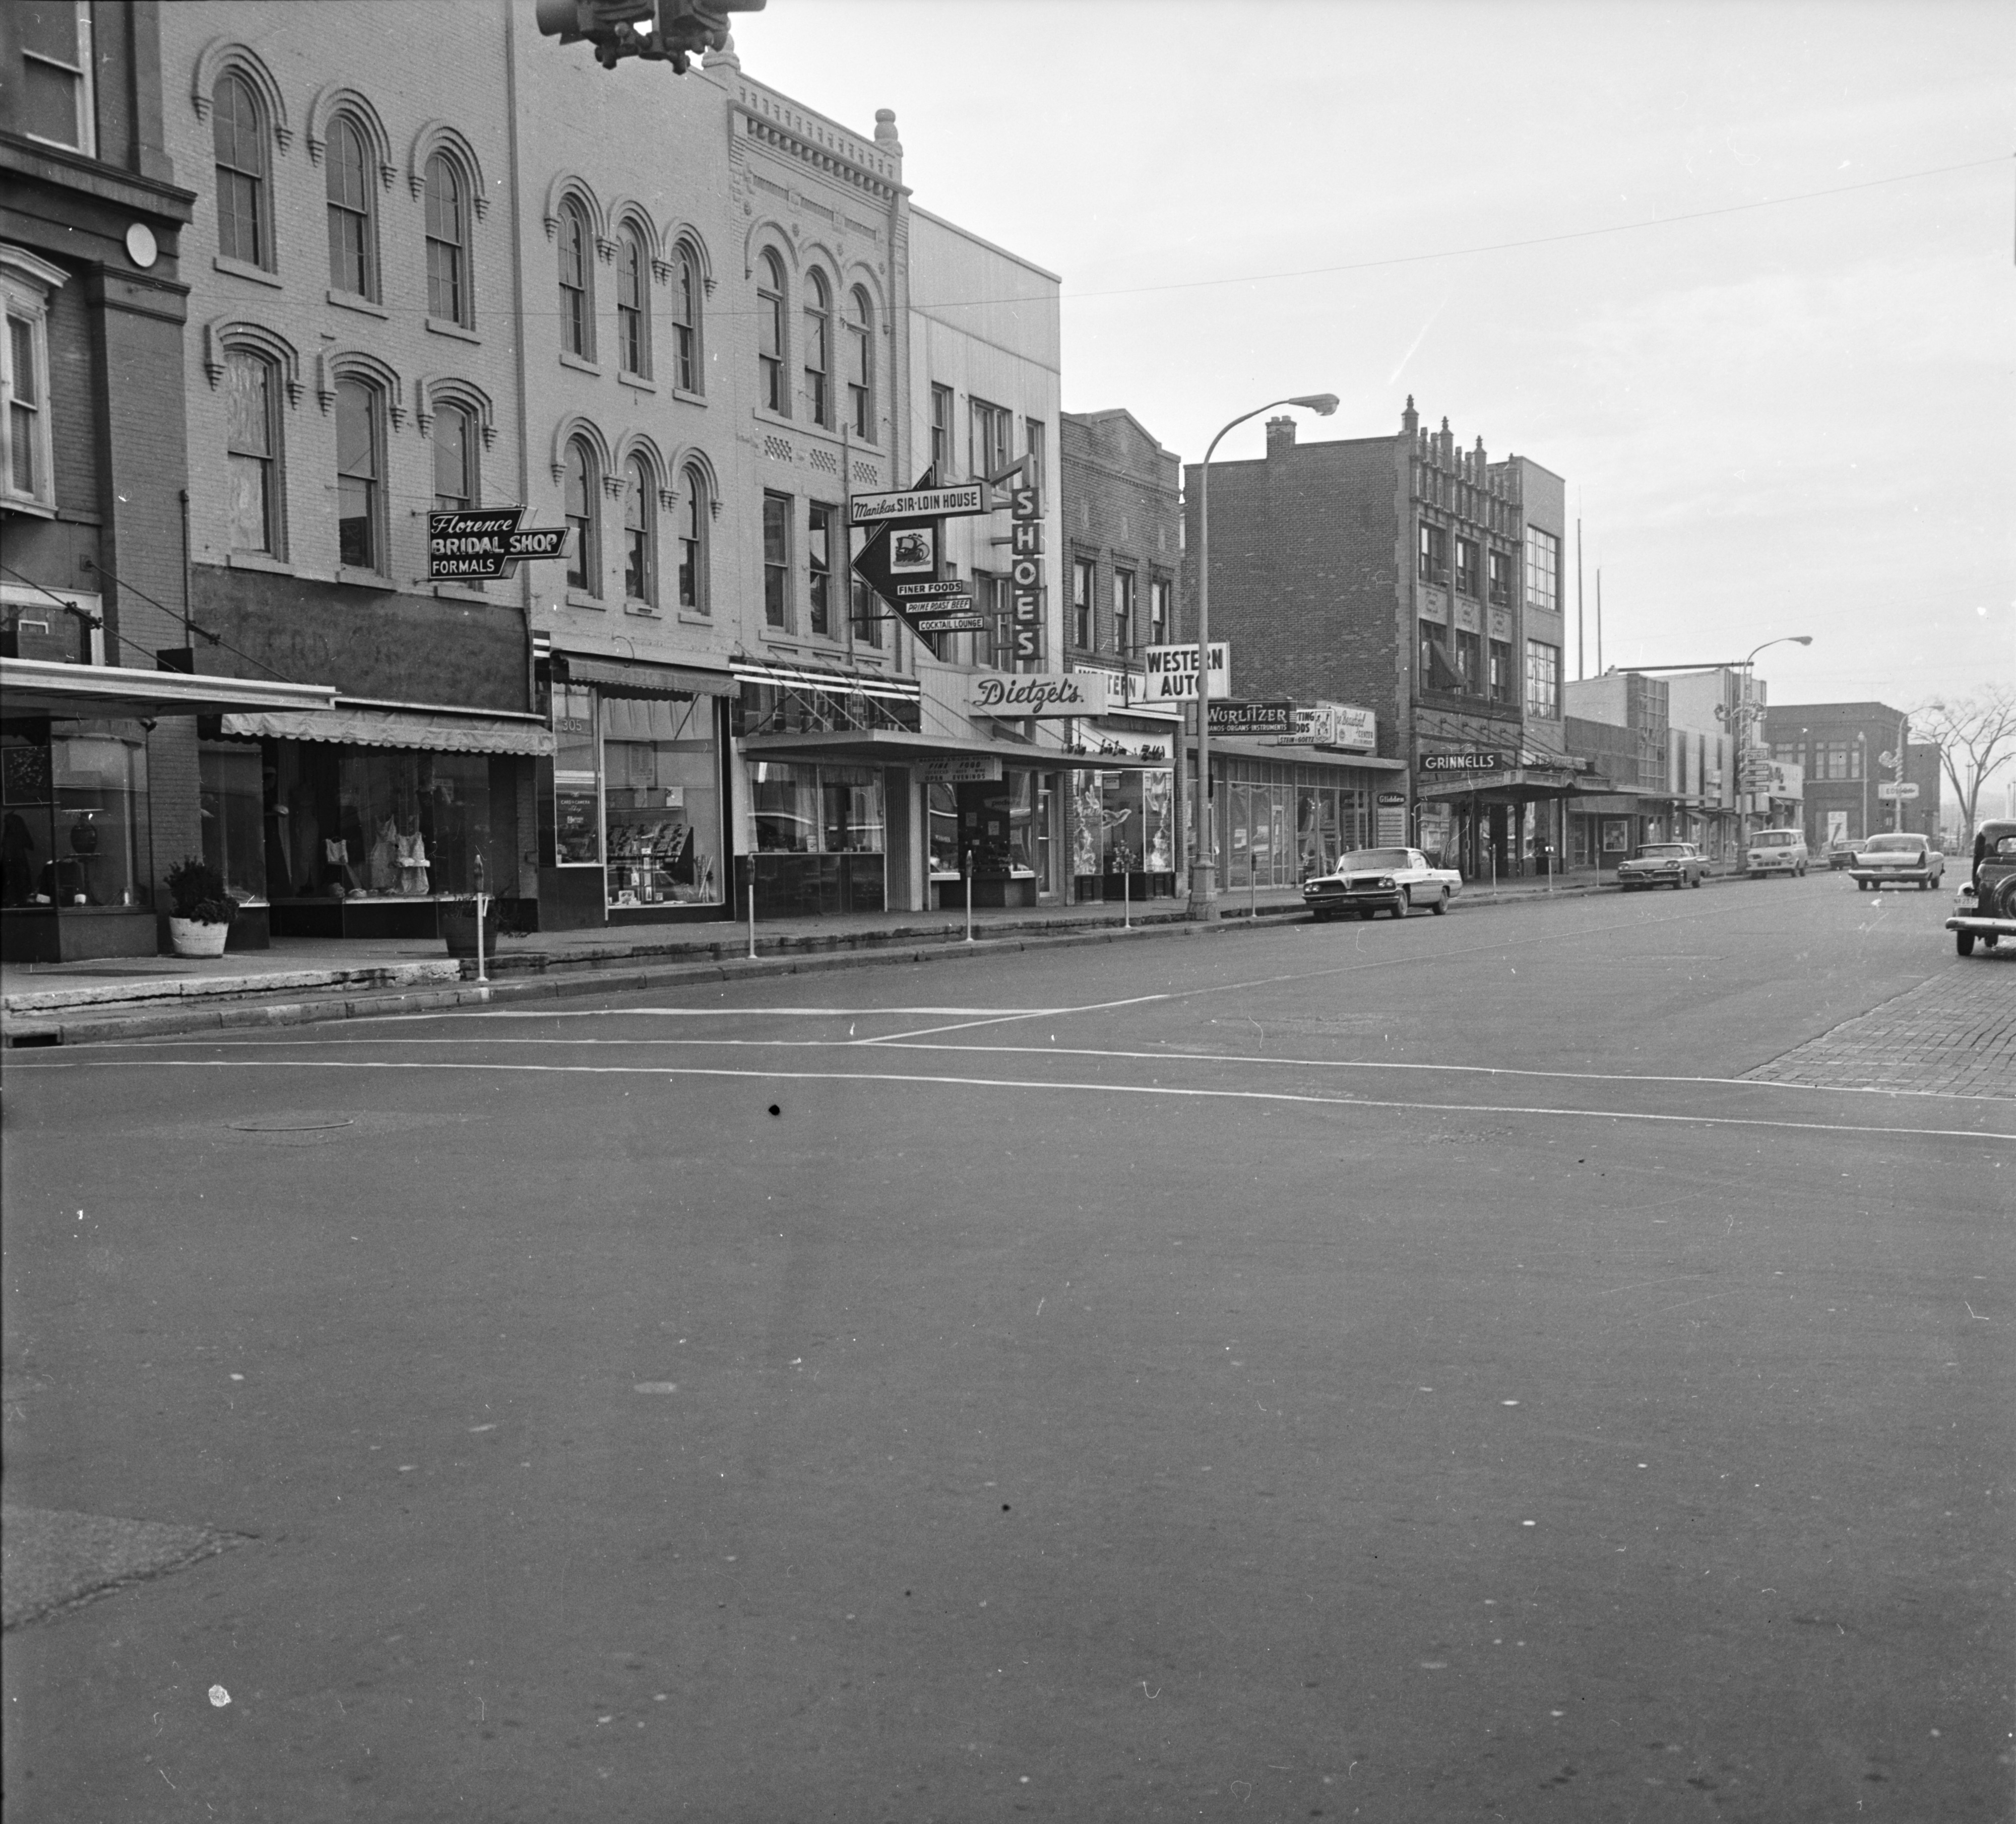 Main Street deserted as Ann Arbor mourns the death of President Kennedy, November 25, 1963 image